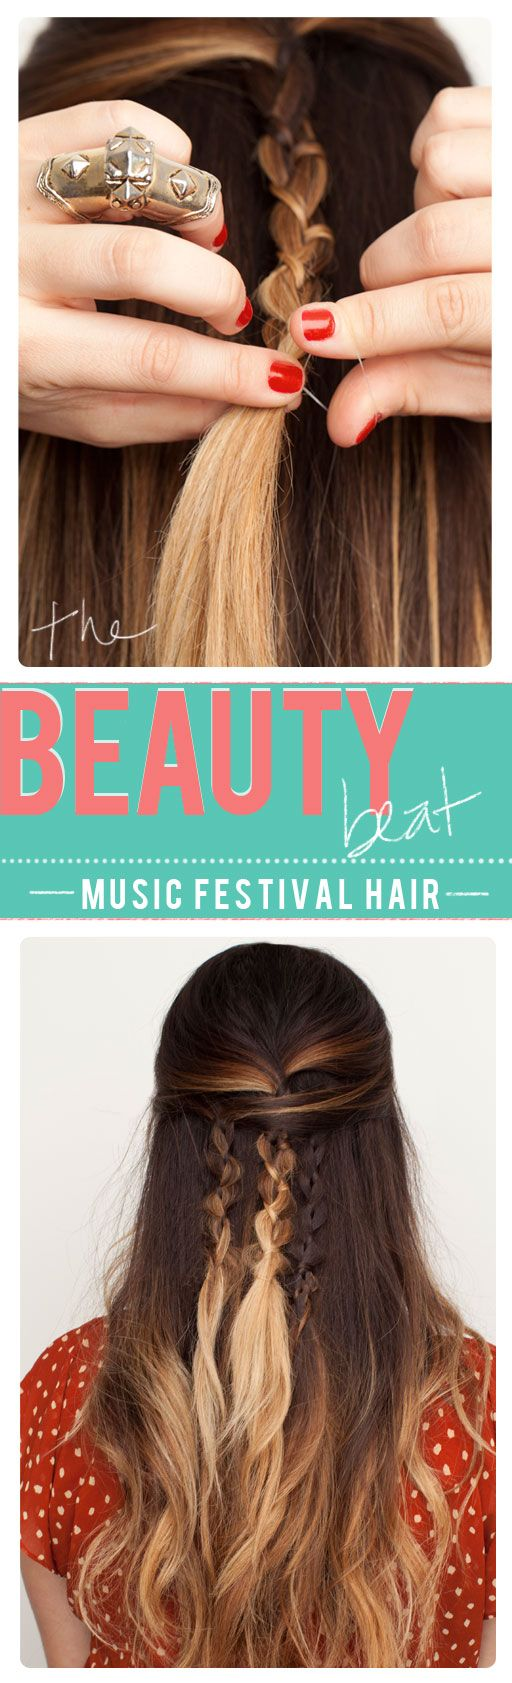 Music Festival hair idea #1! xo